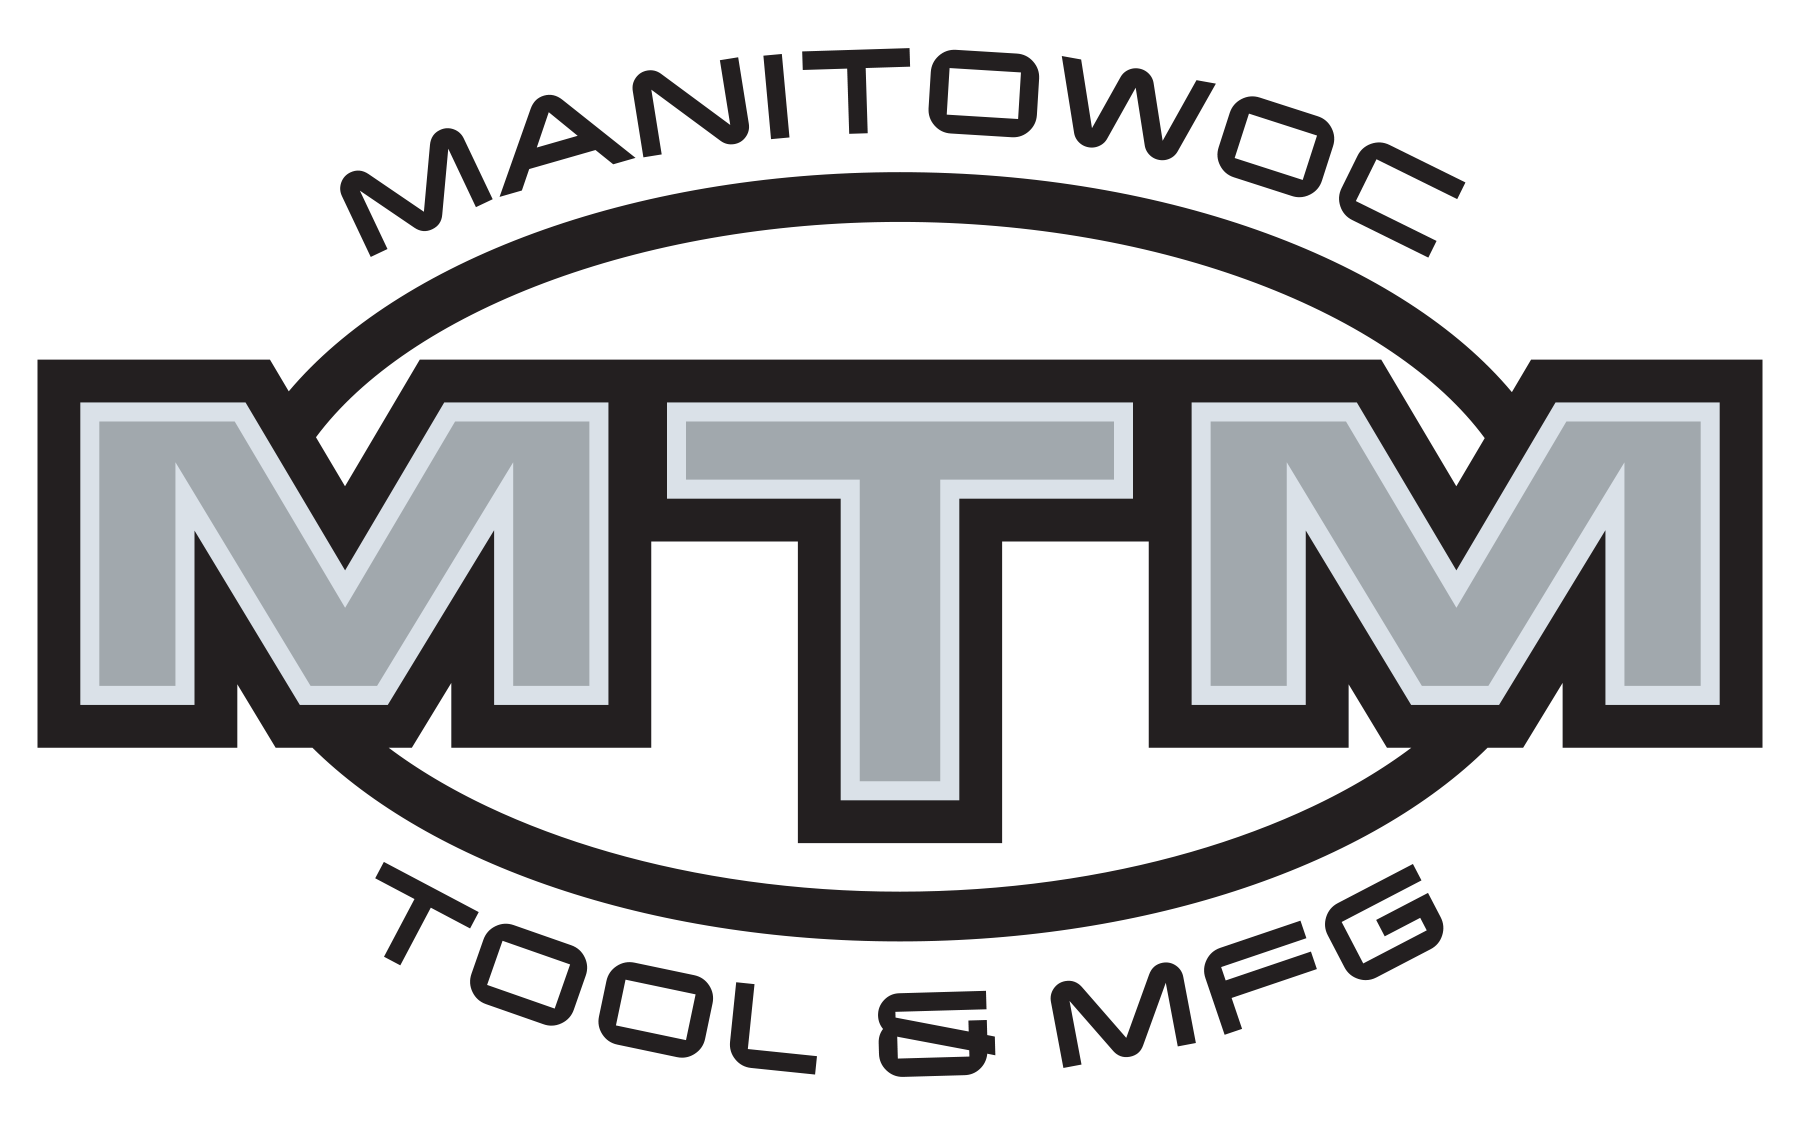 Manitowoc Tool & Manufacturing, LLC in Manitowoc, WI. Production metal stamping, metal fabrication & tool & die.